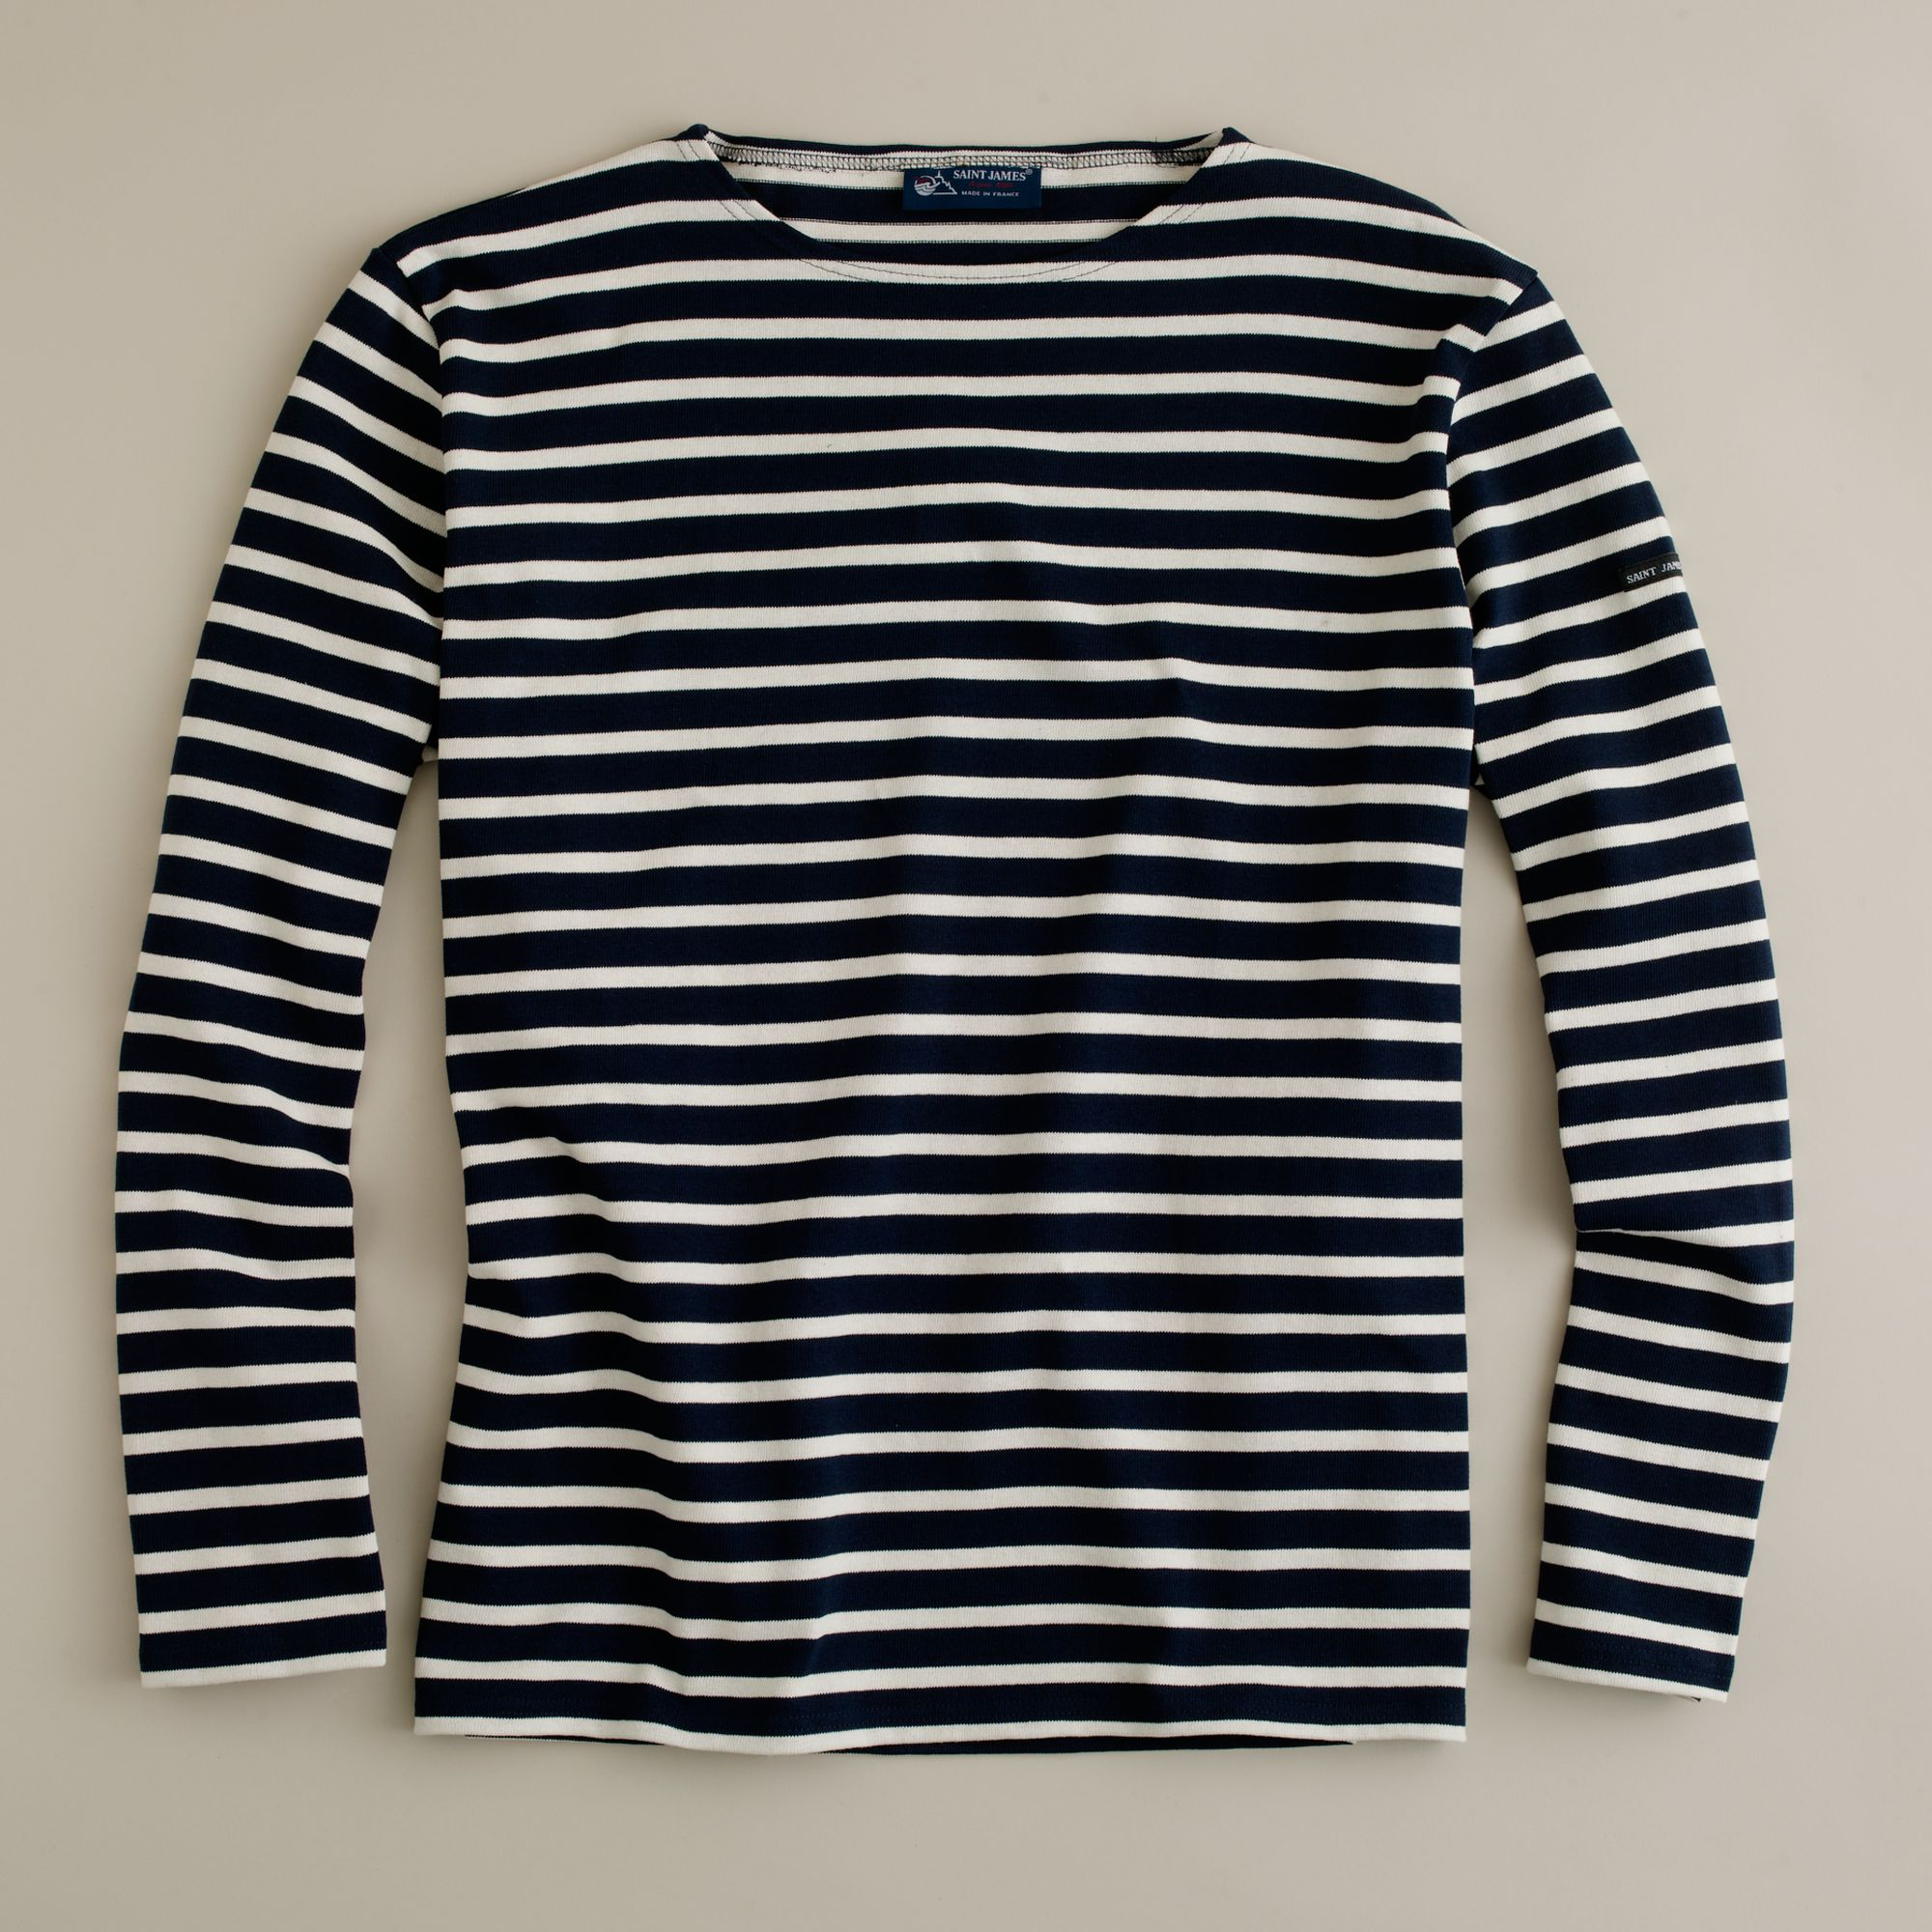 Saint james unisex meridien ii nautical t shirt in for St james striped shirt